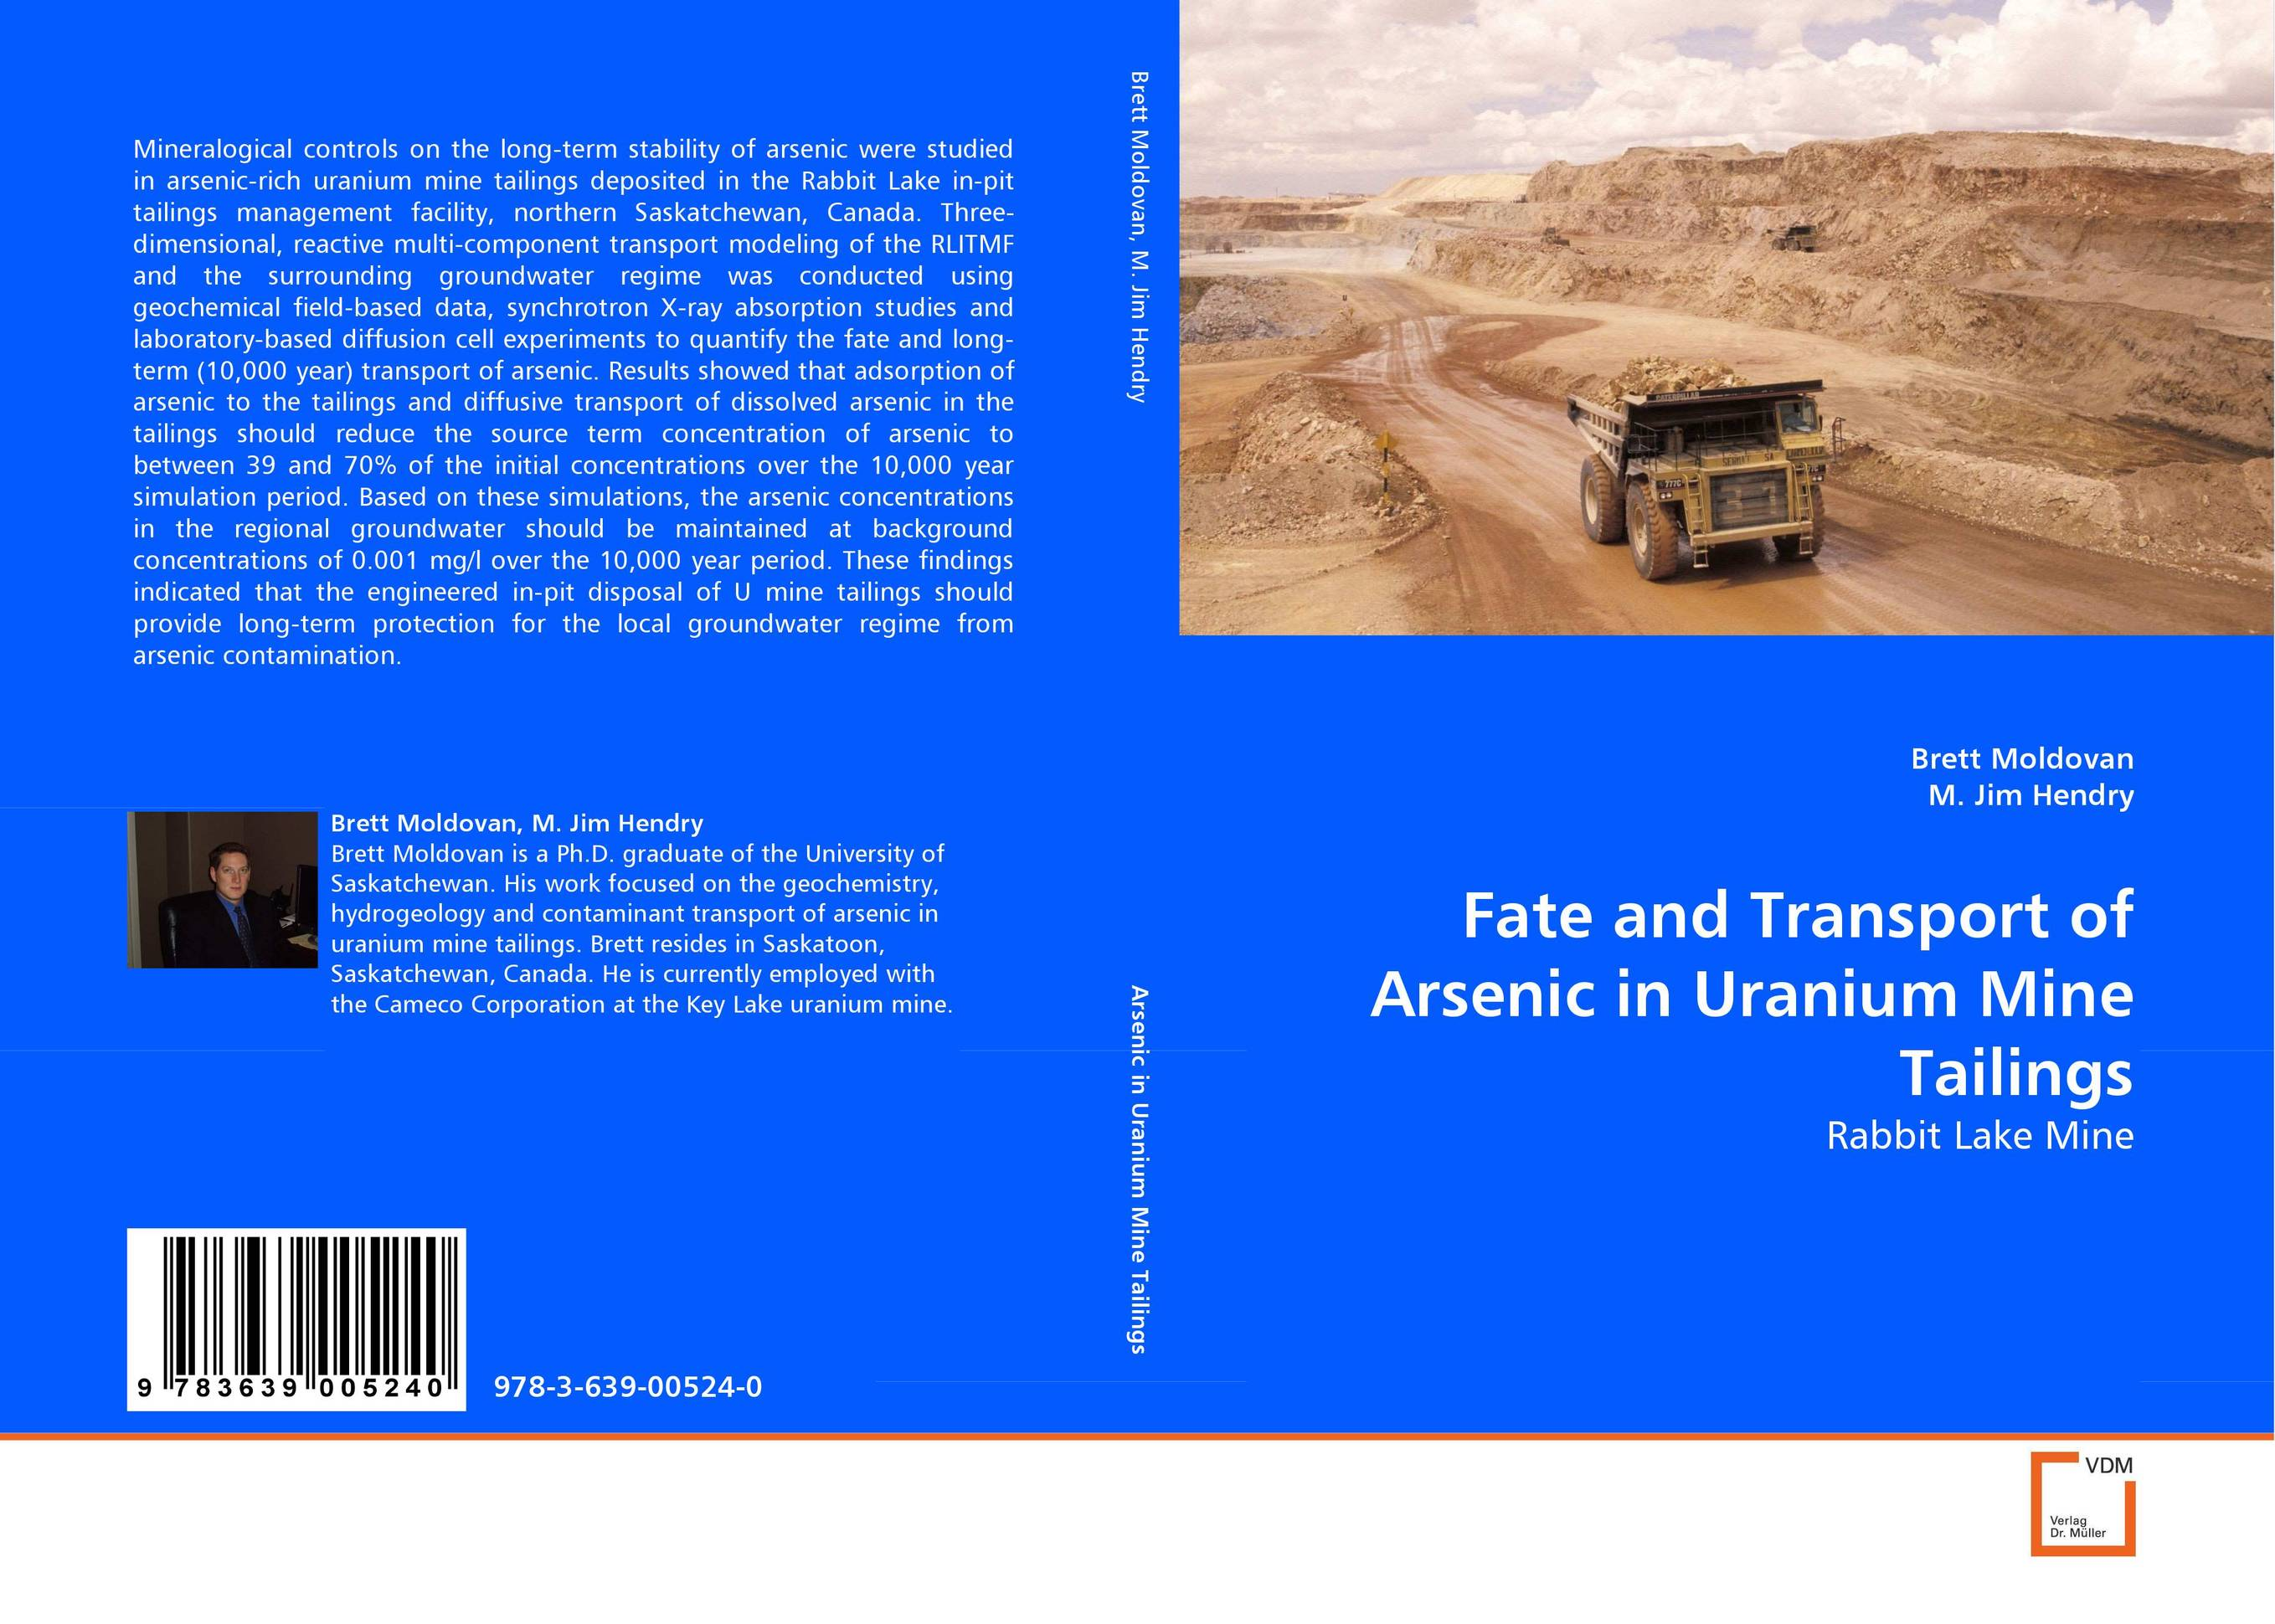 Fate and Transport of Arsenic in Uranium Mine Tailings psychiatric disorders in postpartum period